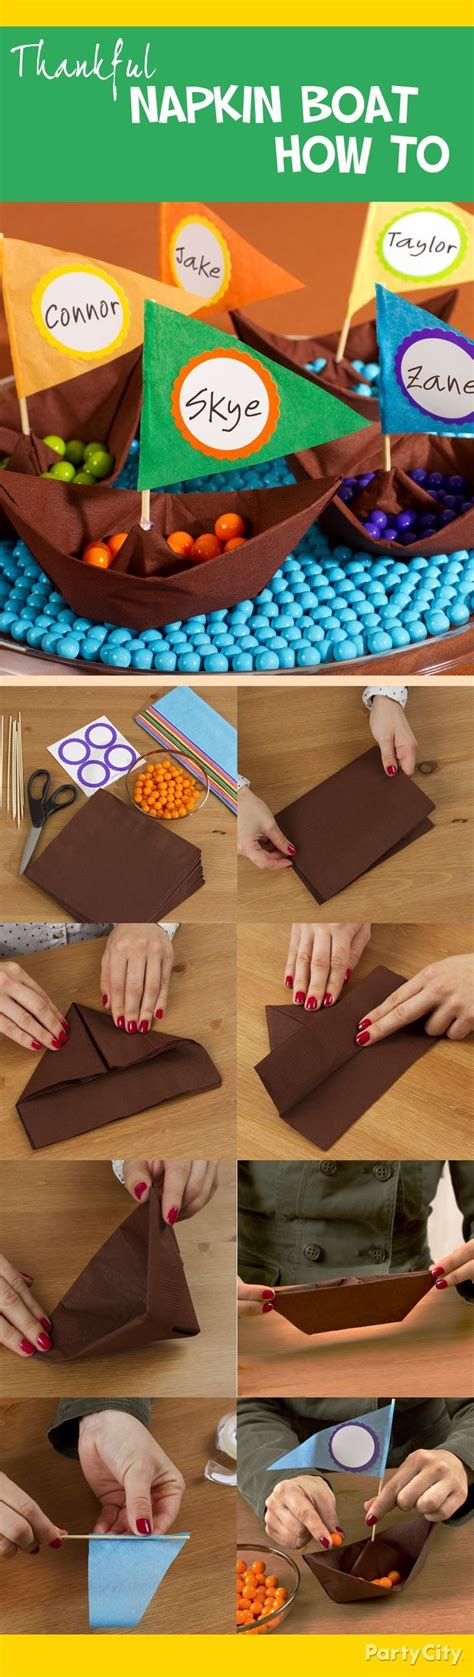 how to make a paper napkin boat make napkin paper boats with this step by step napkin